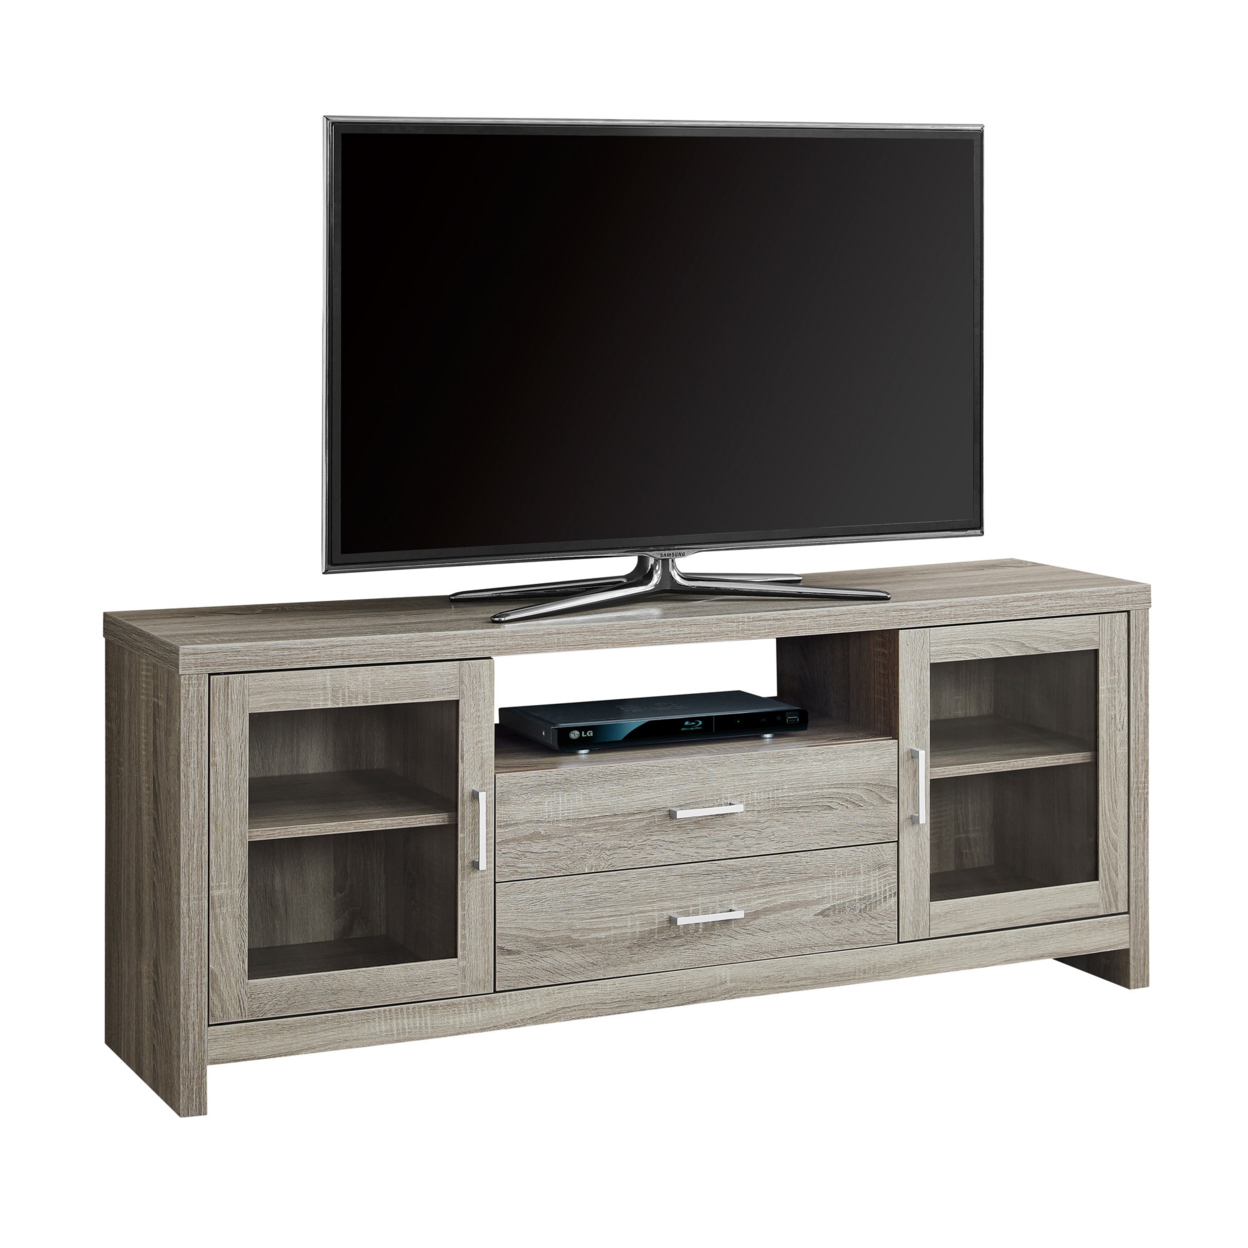 "TV Stand - 60""l, Dark Taupe - Drawers, Glass Doors 5a54622fe22461374547735a"